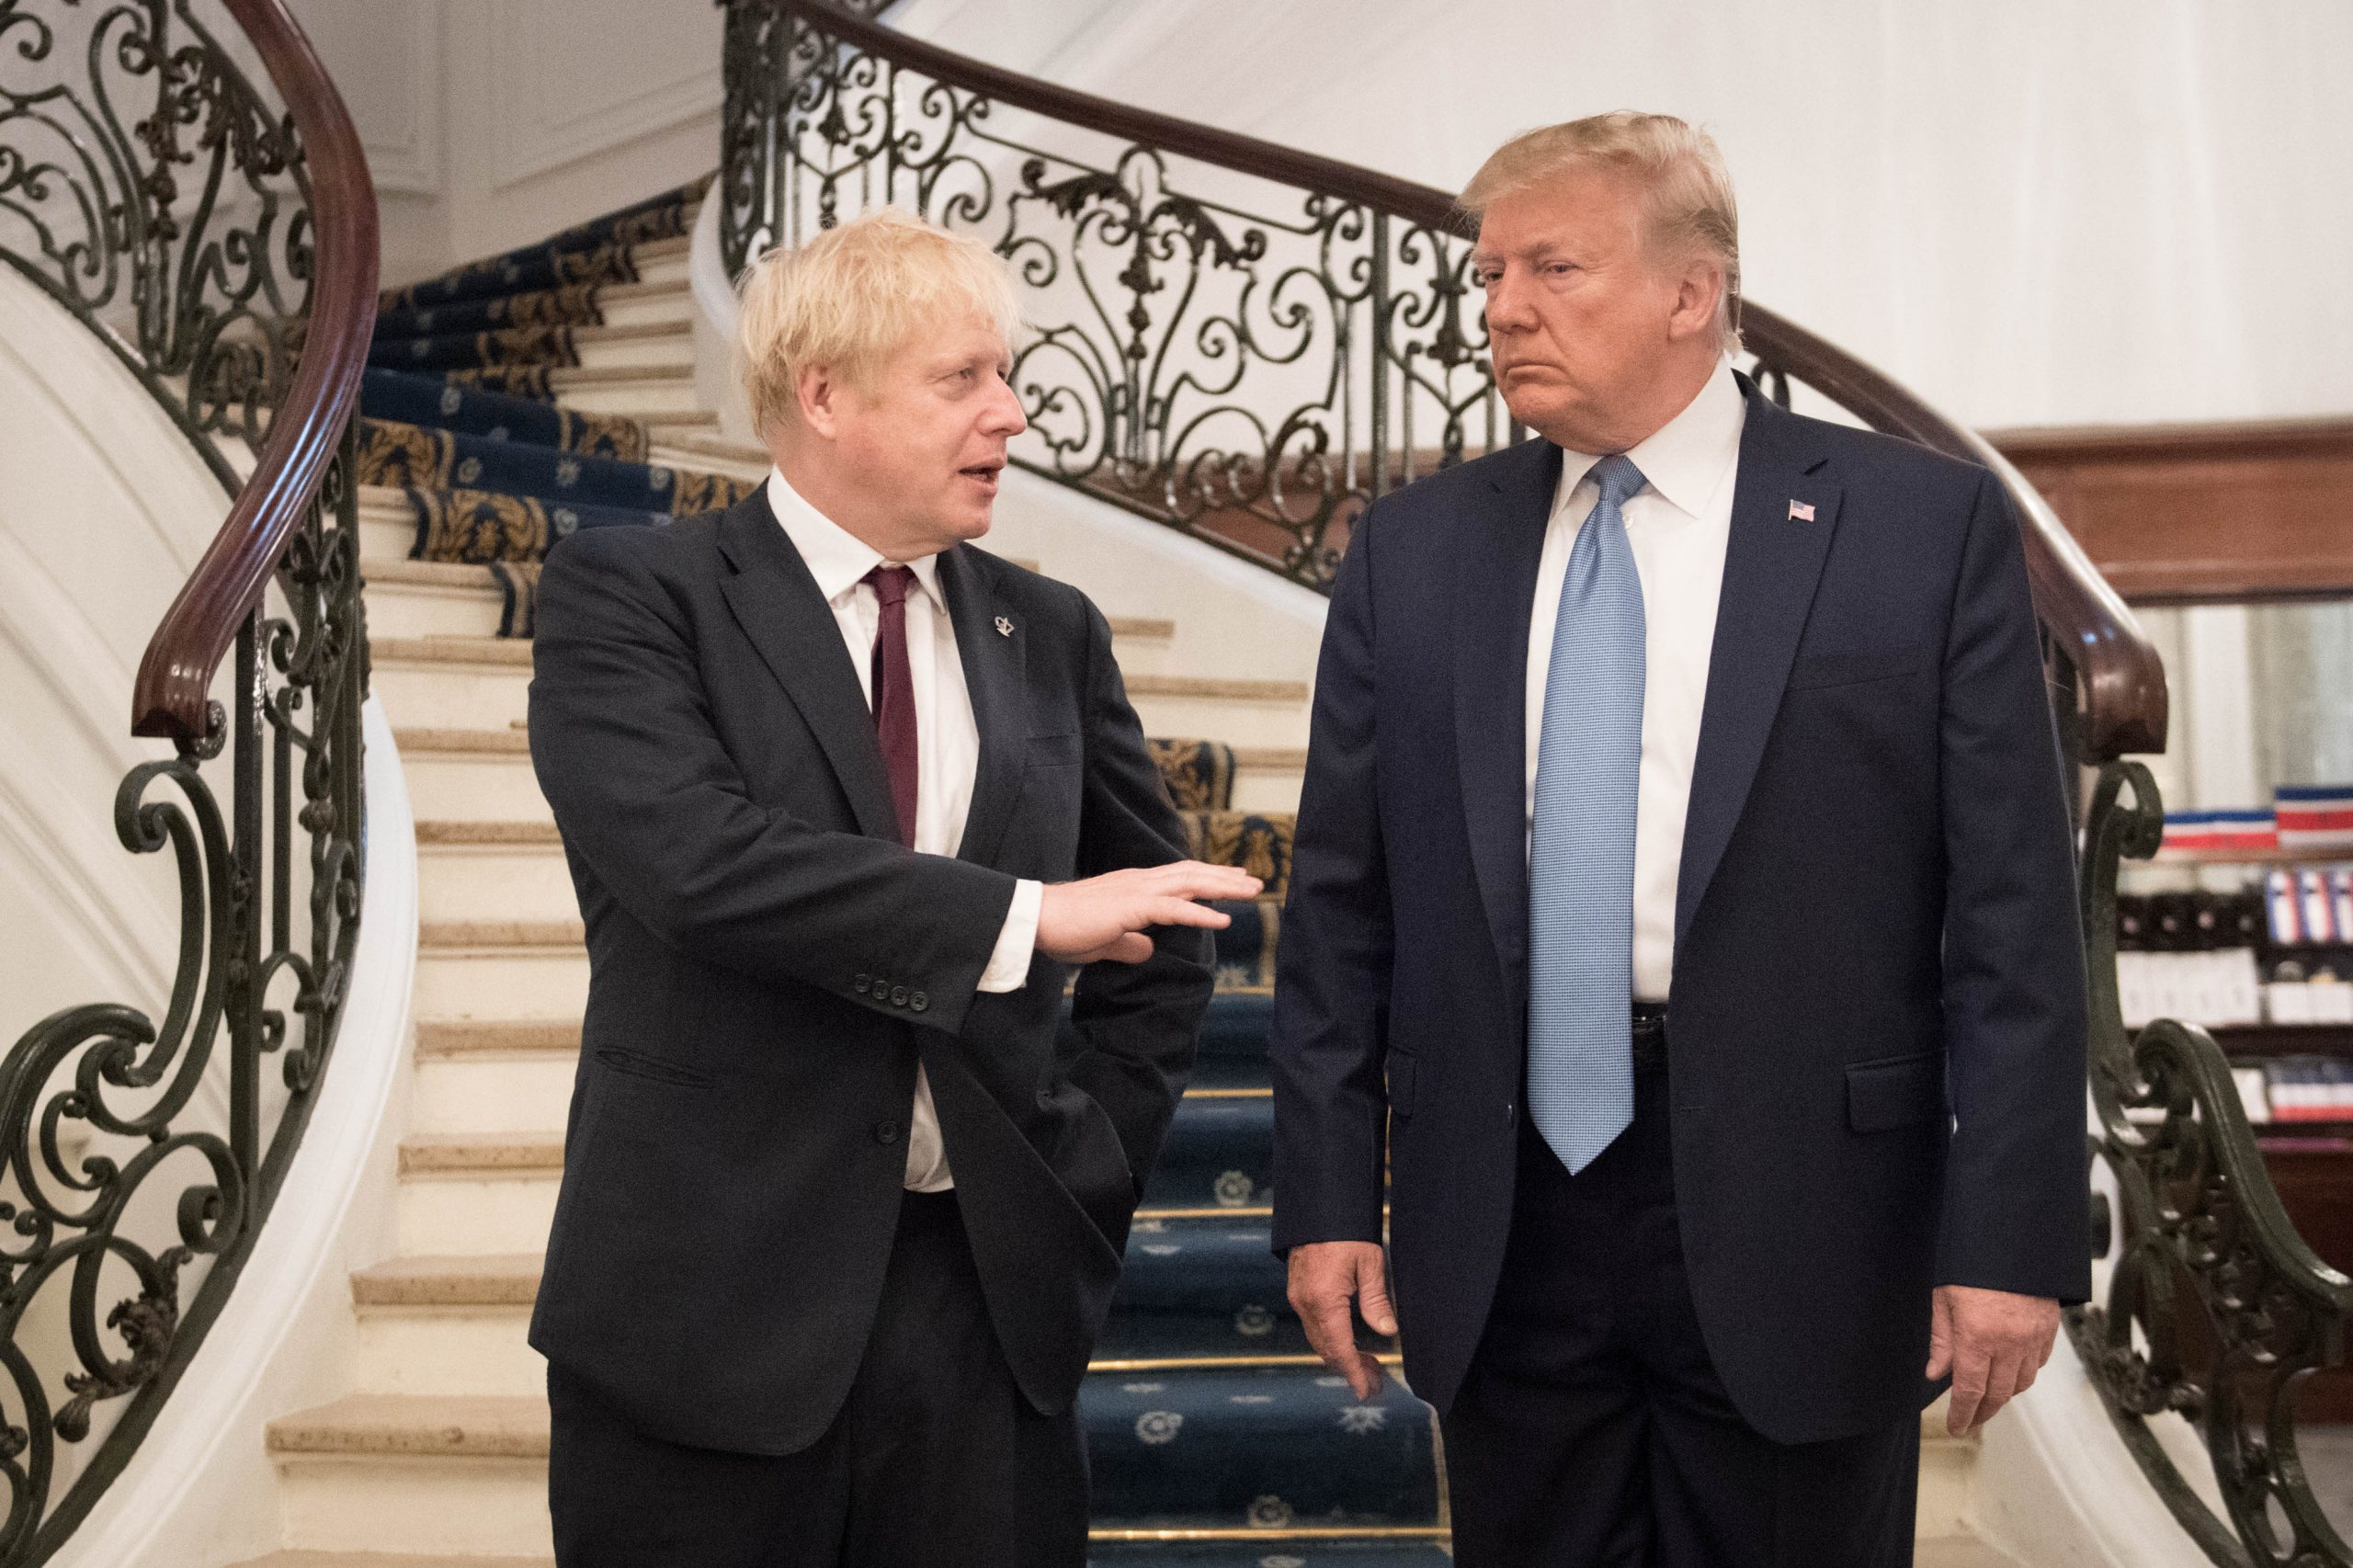 'Trump deal' could replace 2015 Iran nuclear accord, Boris Johnson says